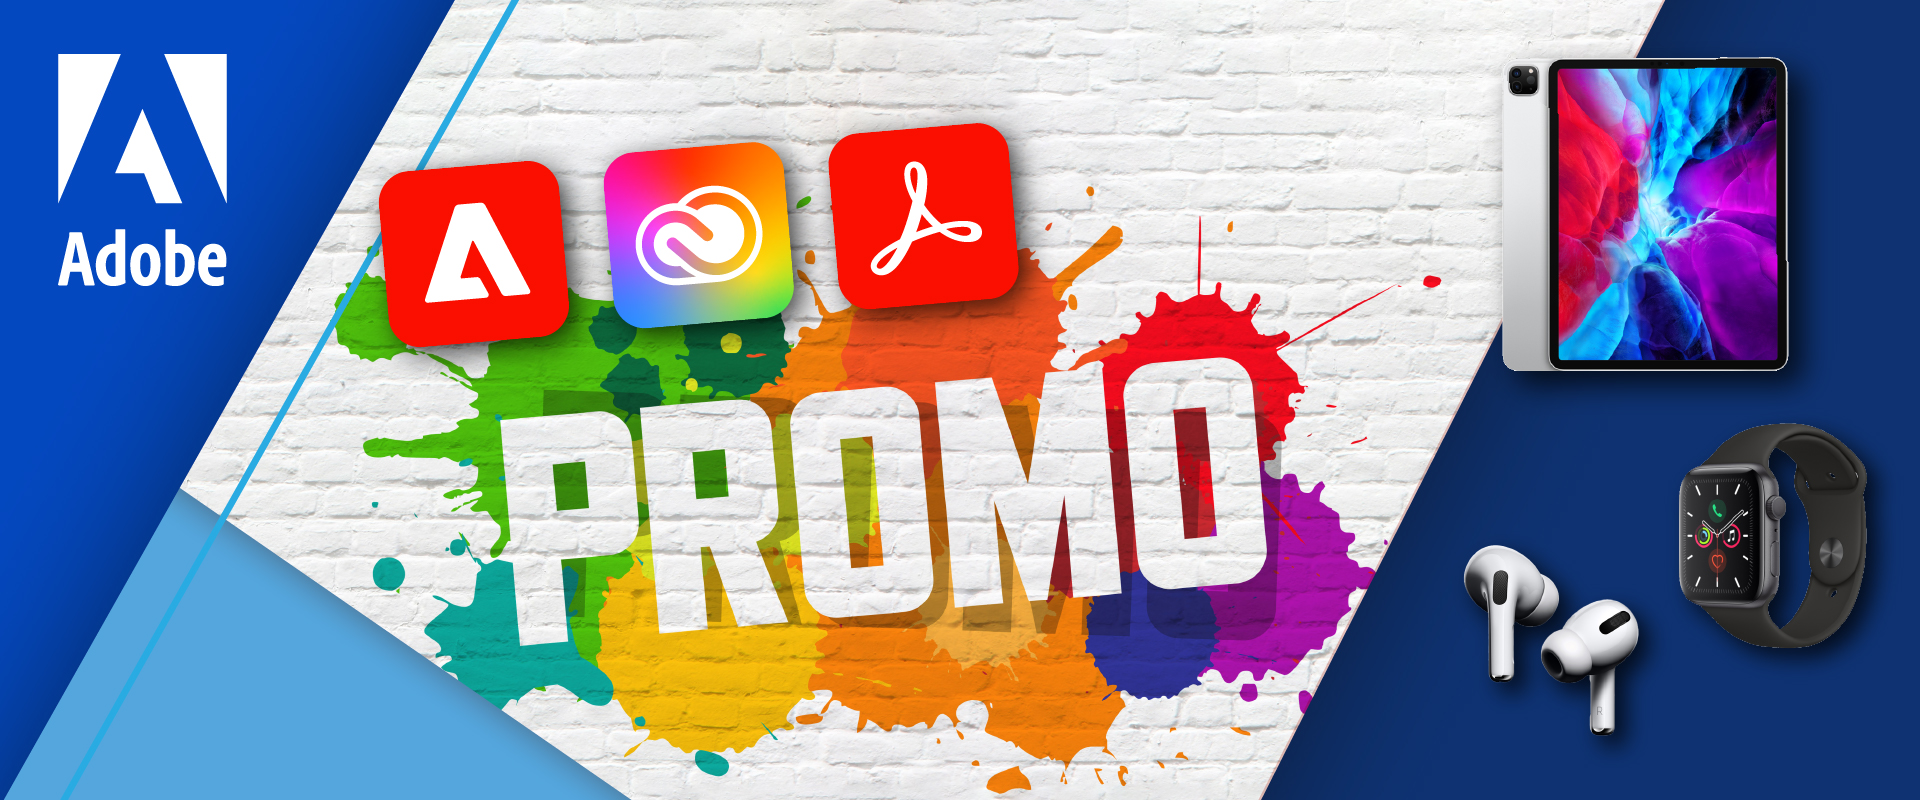 Adobe Creative Cloud End User Promotion